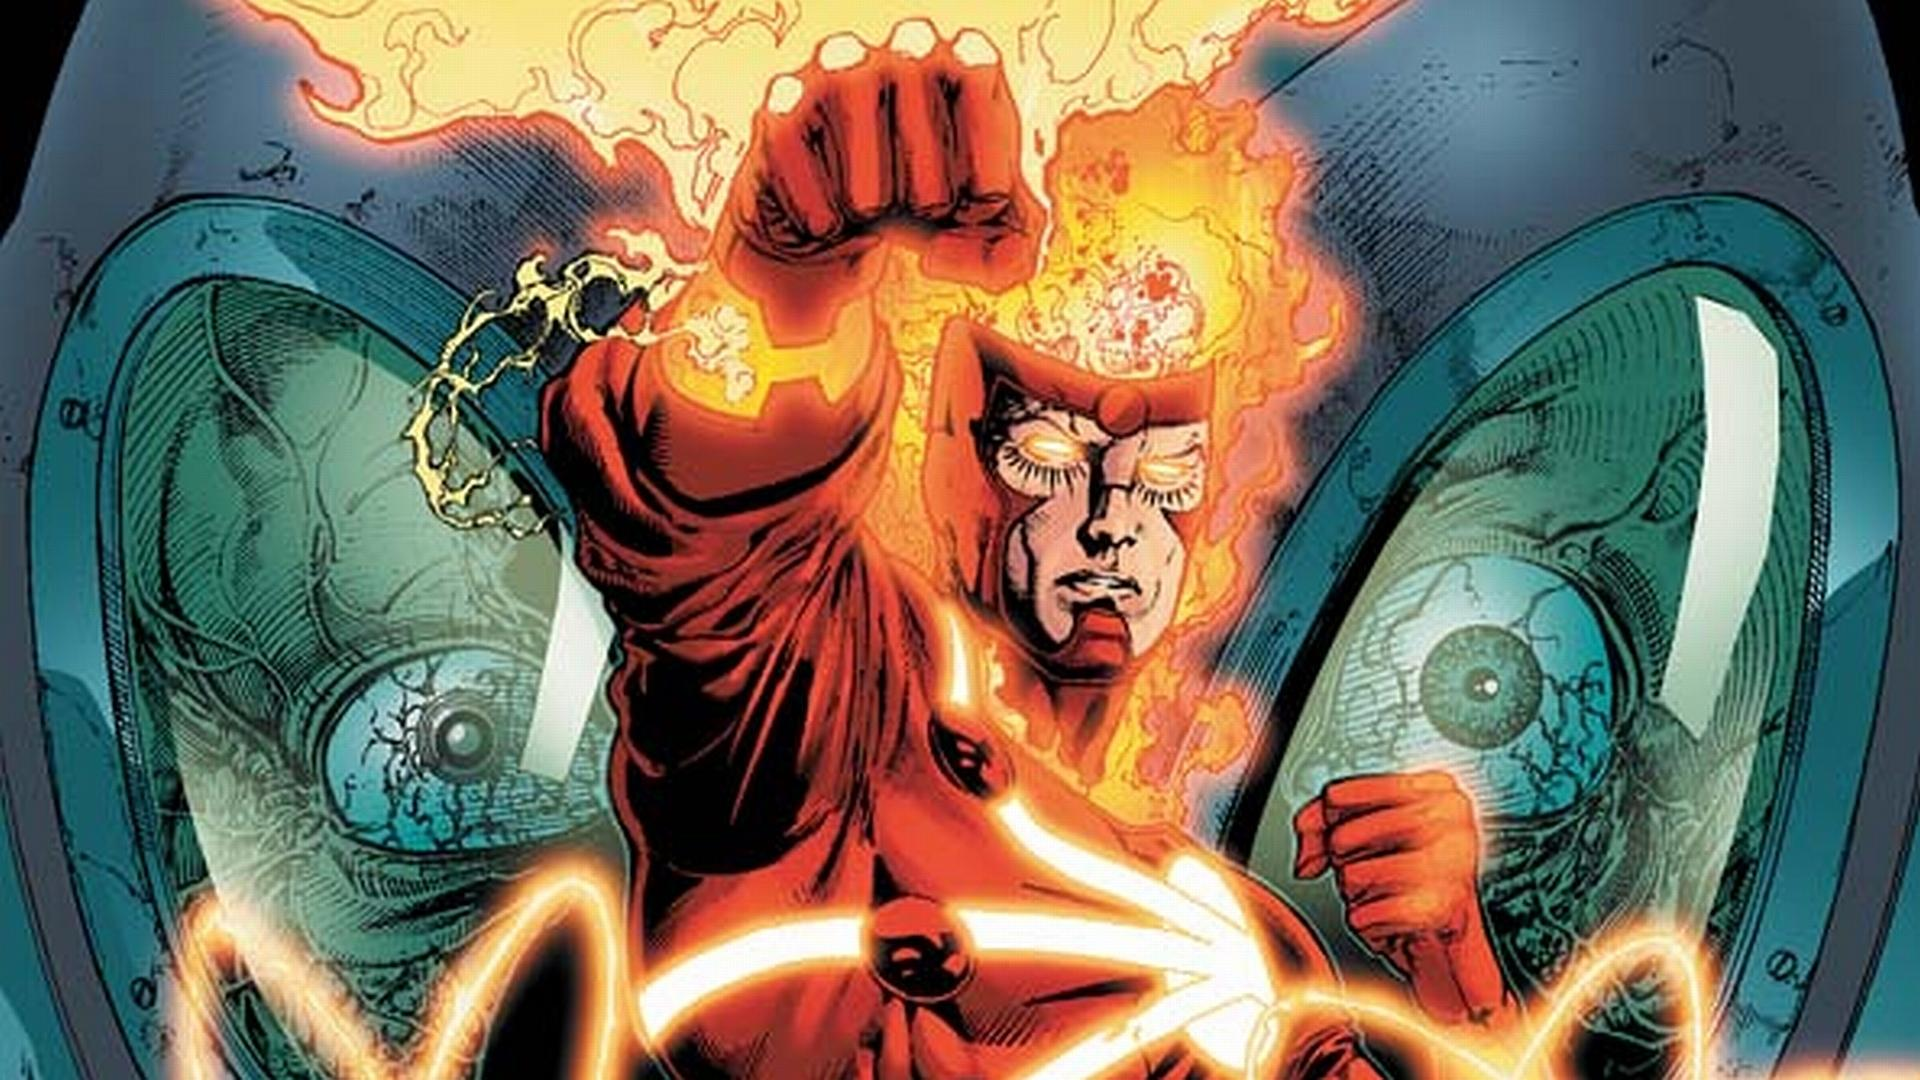 Firestorm Comics wallpapers HD quality